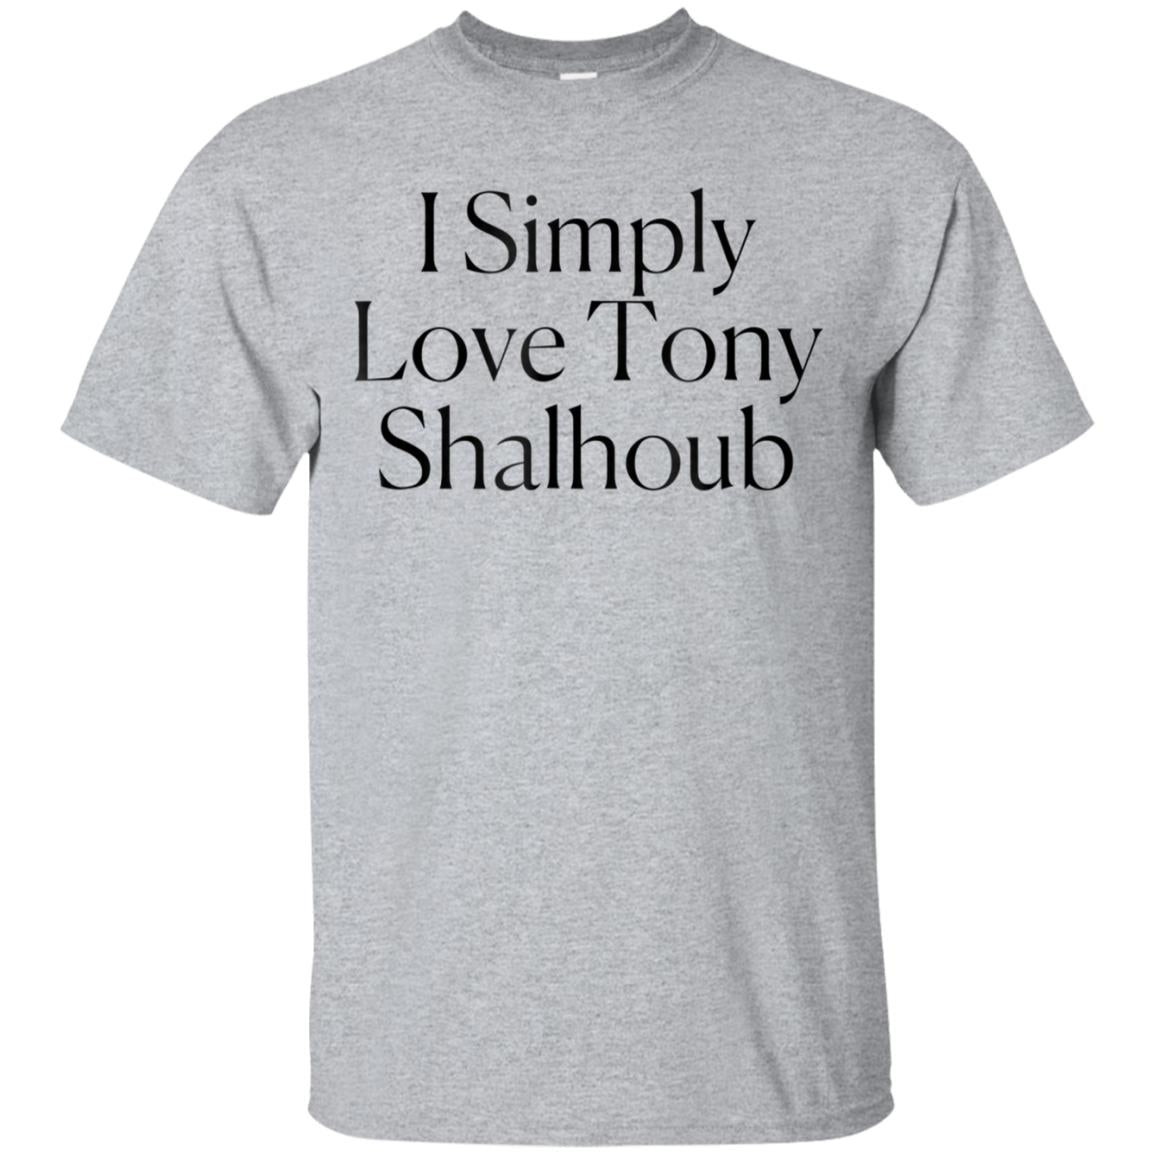 The Cut - I Simply Love Tony Shalhoub Tee 99promocode